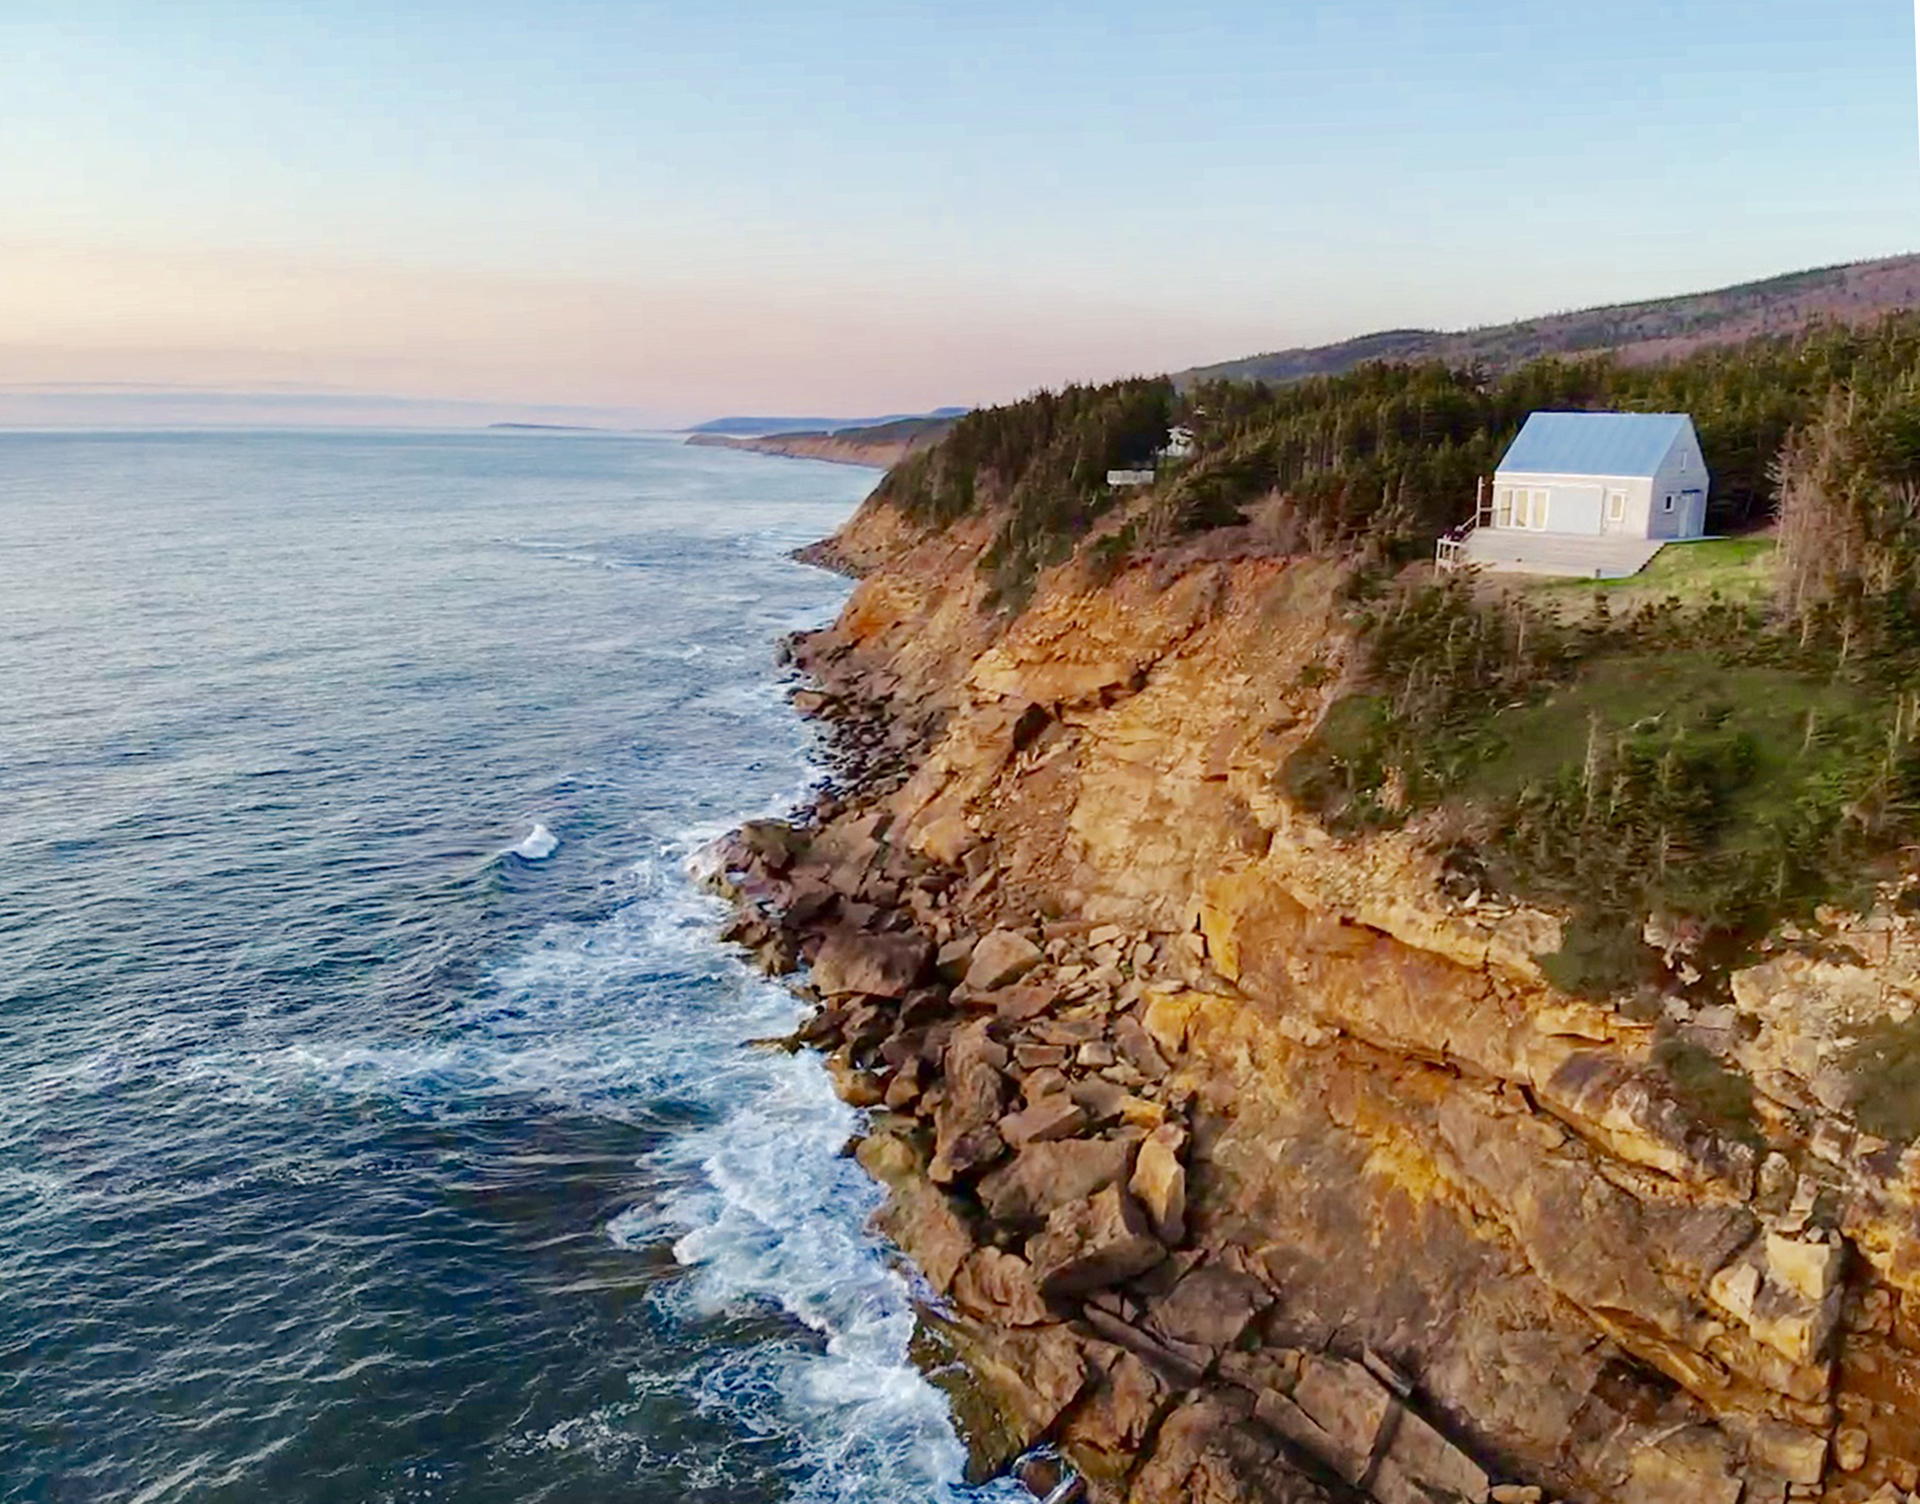 tumbeSea cottage on a cliff